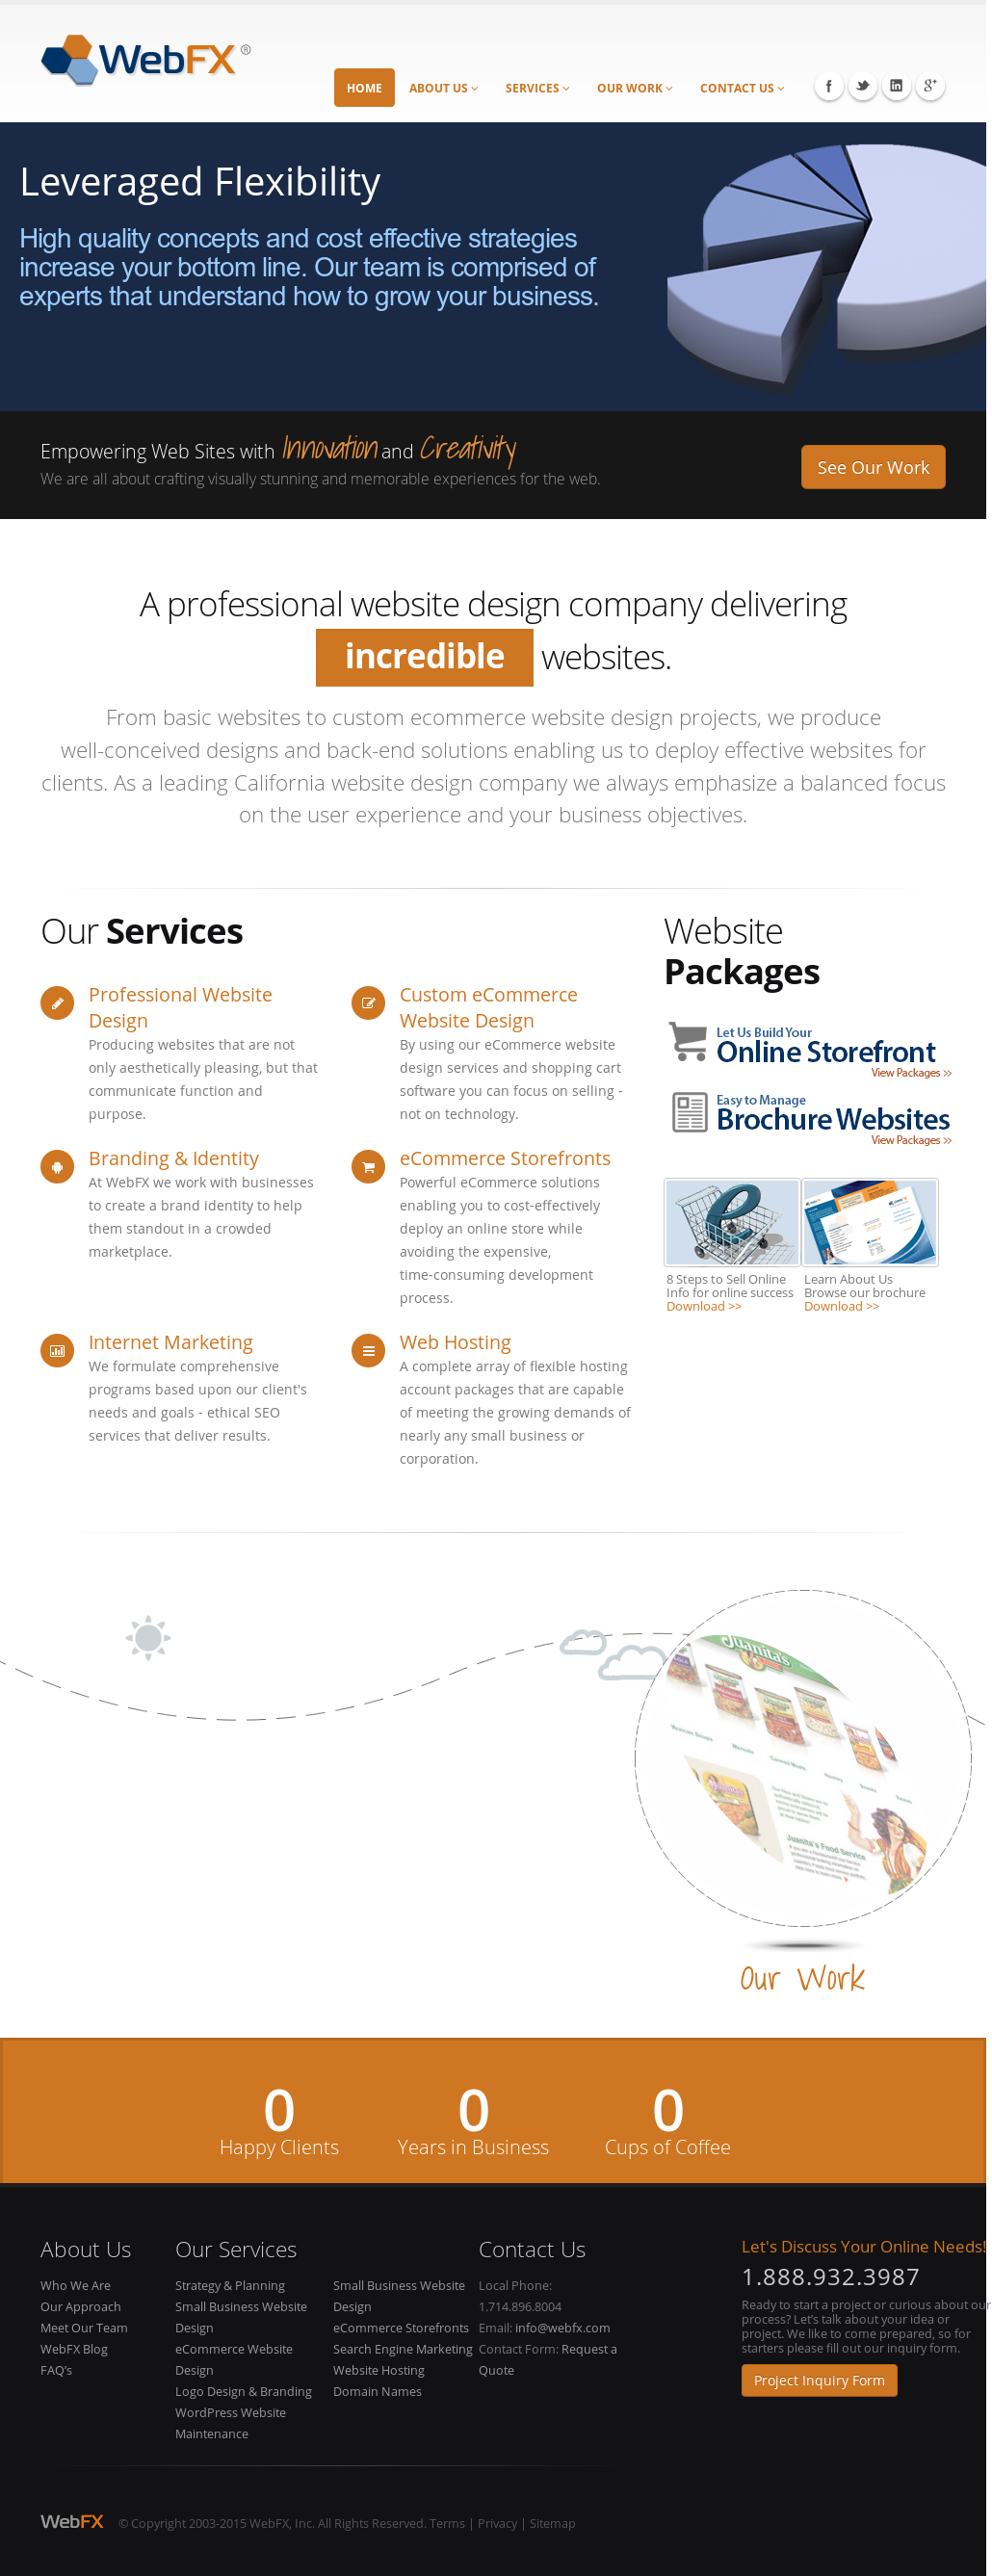 WebFX Competitors, Revenue and Employees - Owler Company Profile